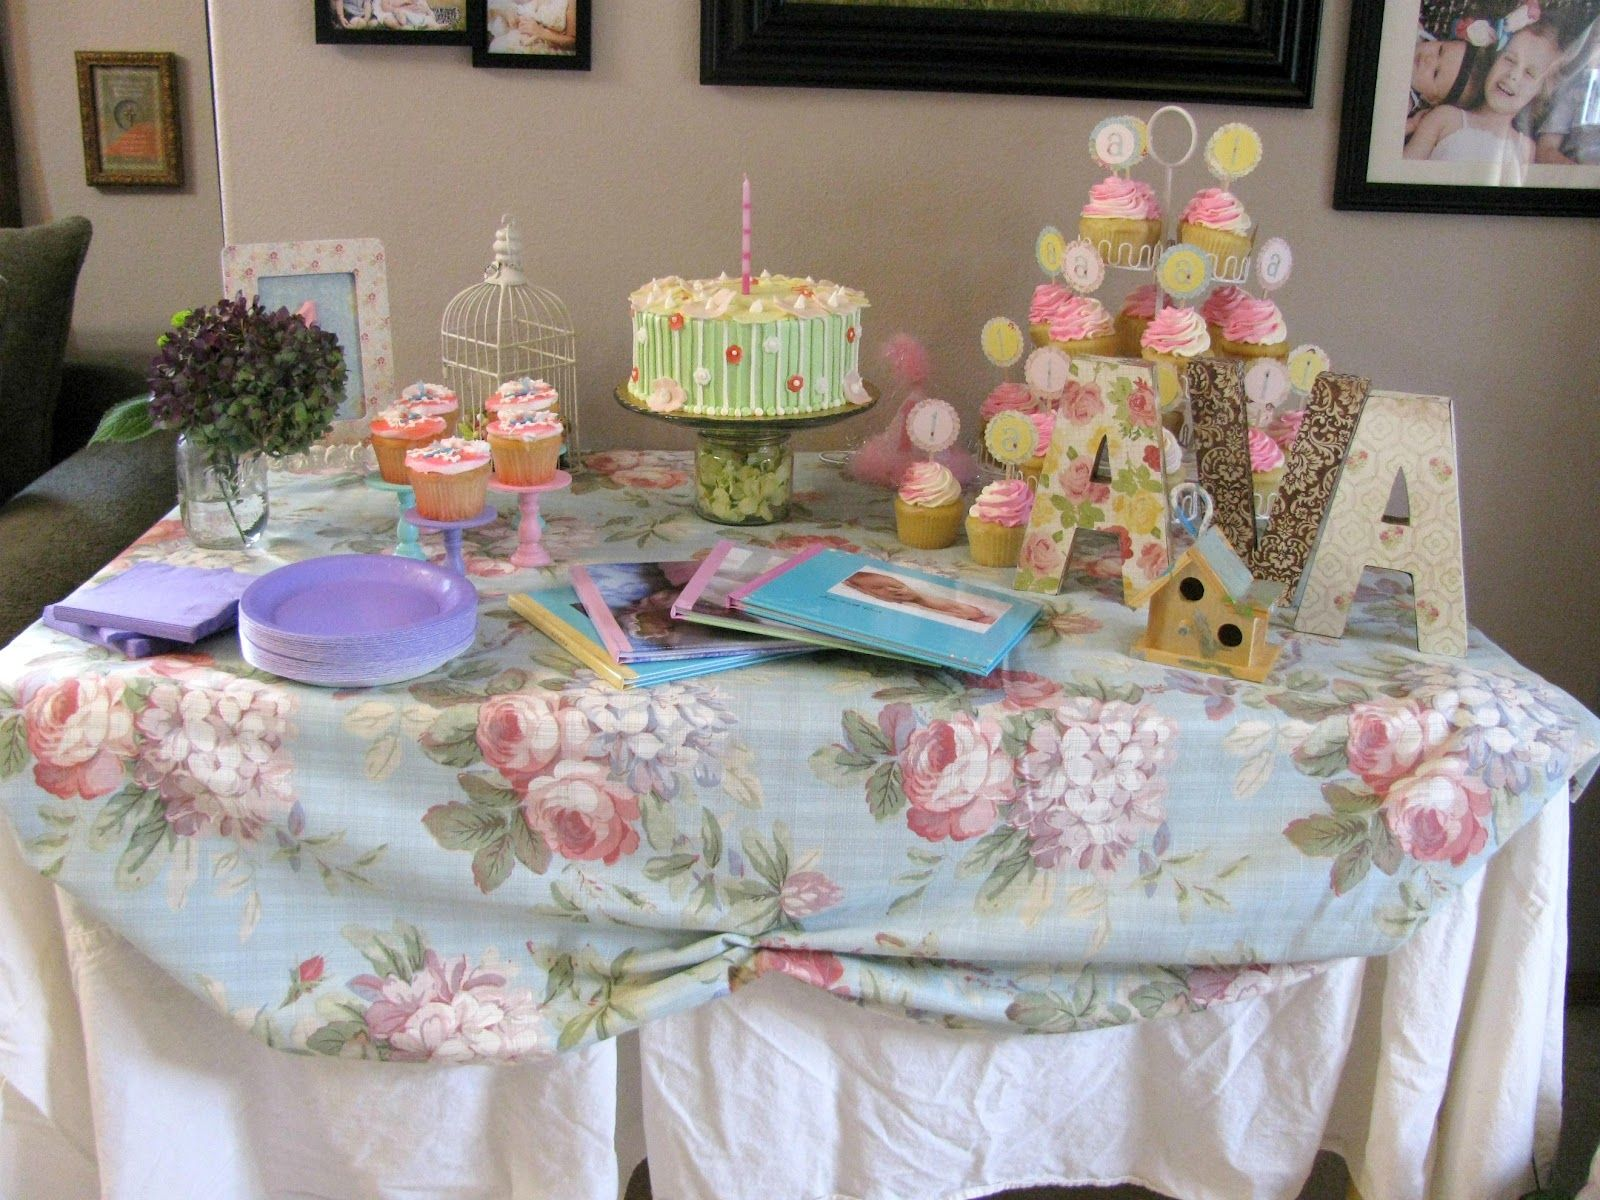 Boots A Place I Call Home Shabby Chic First Birthday Part 1